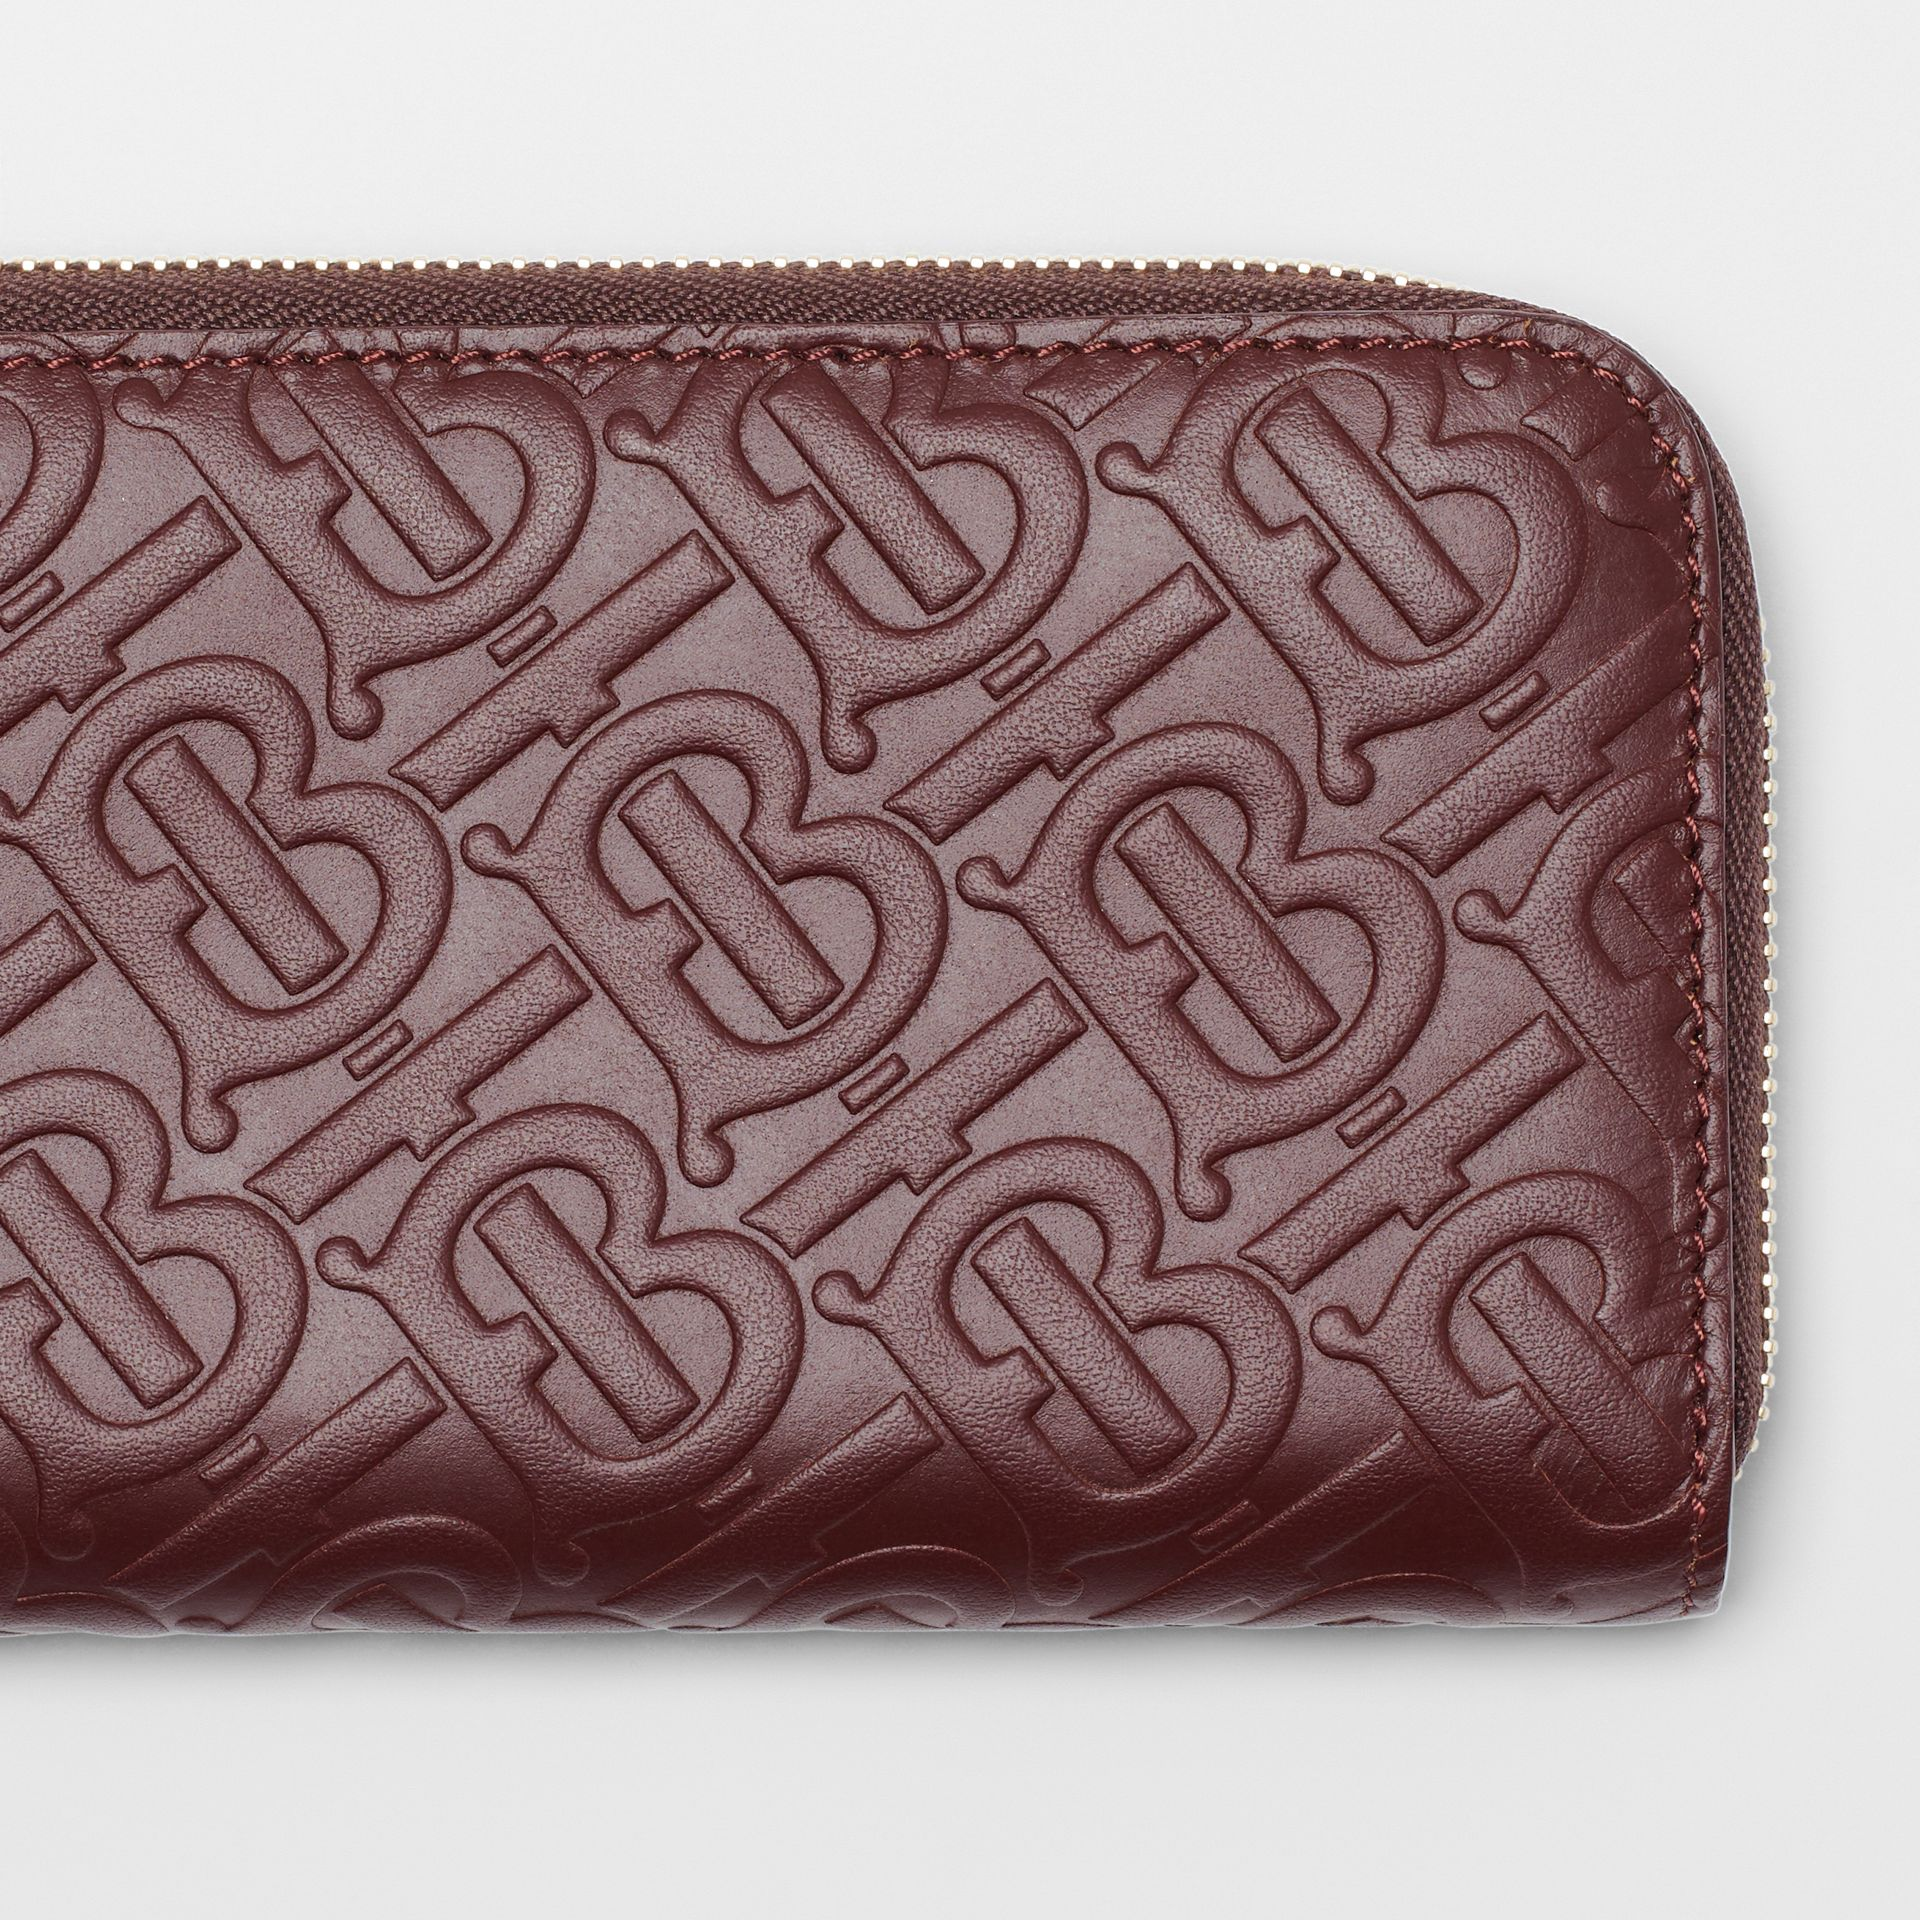 Monogram Leather Ziparound Wallet in Oxblood - Women | Burberry - gallery image 1